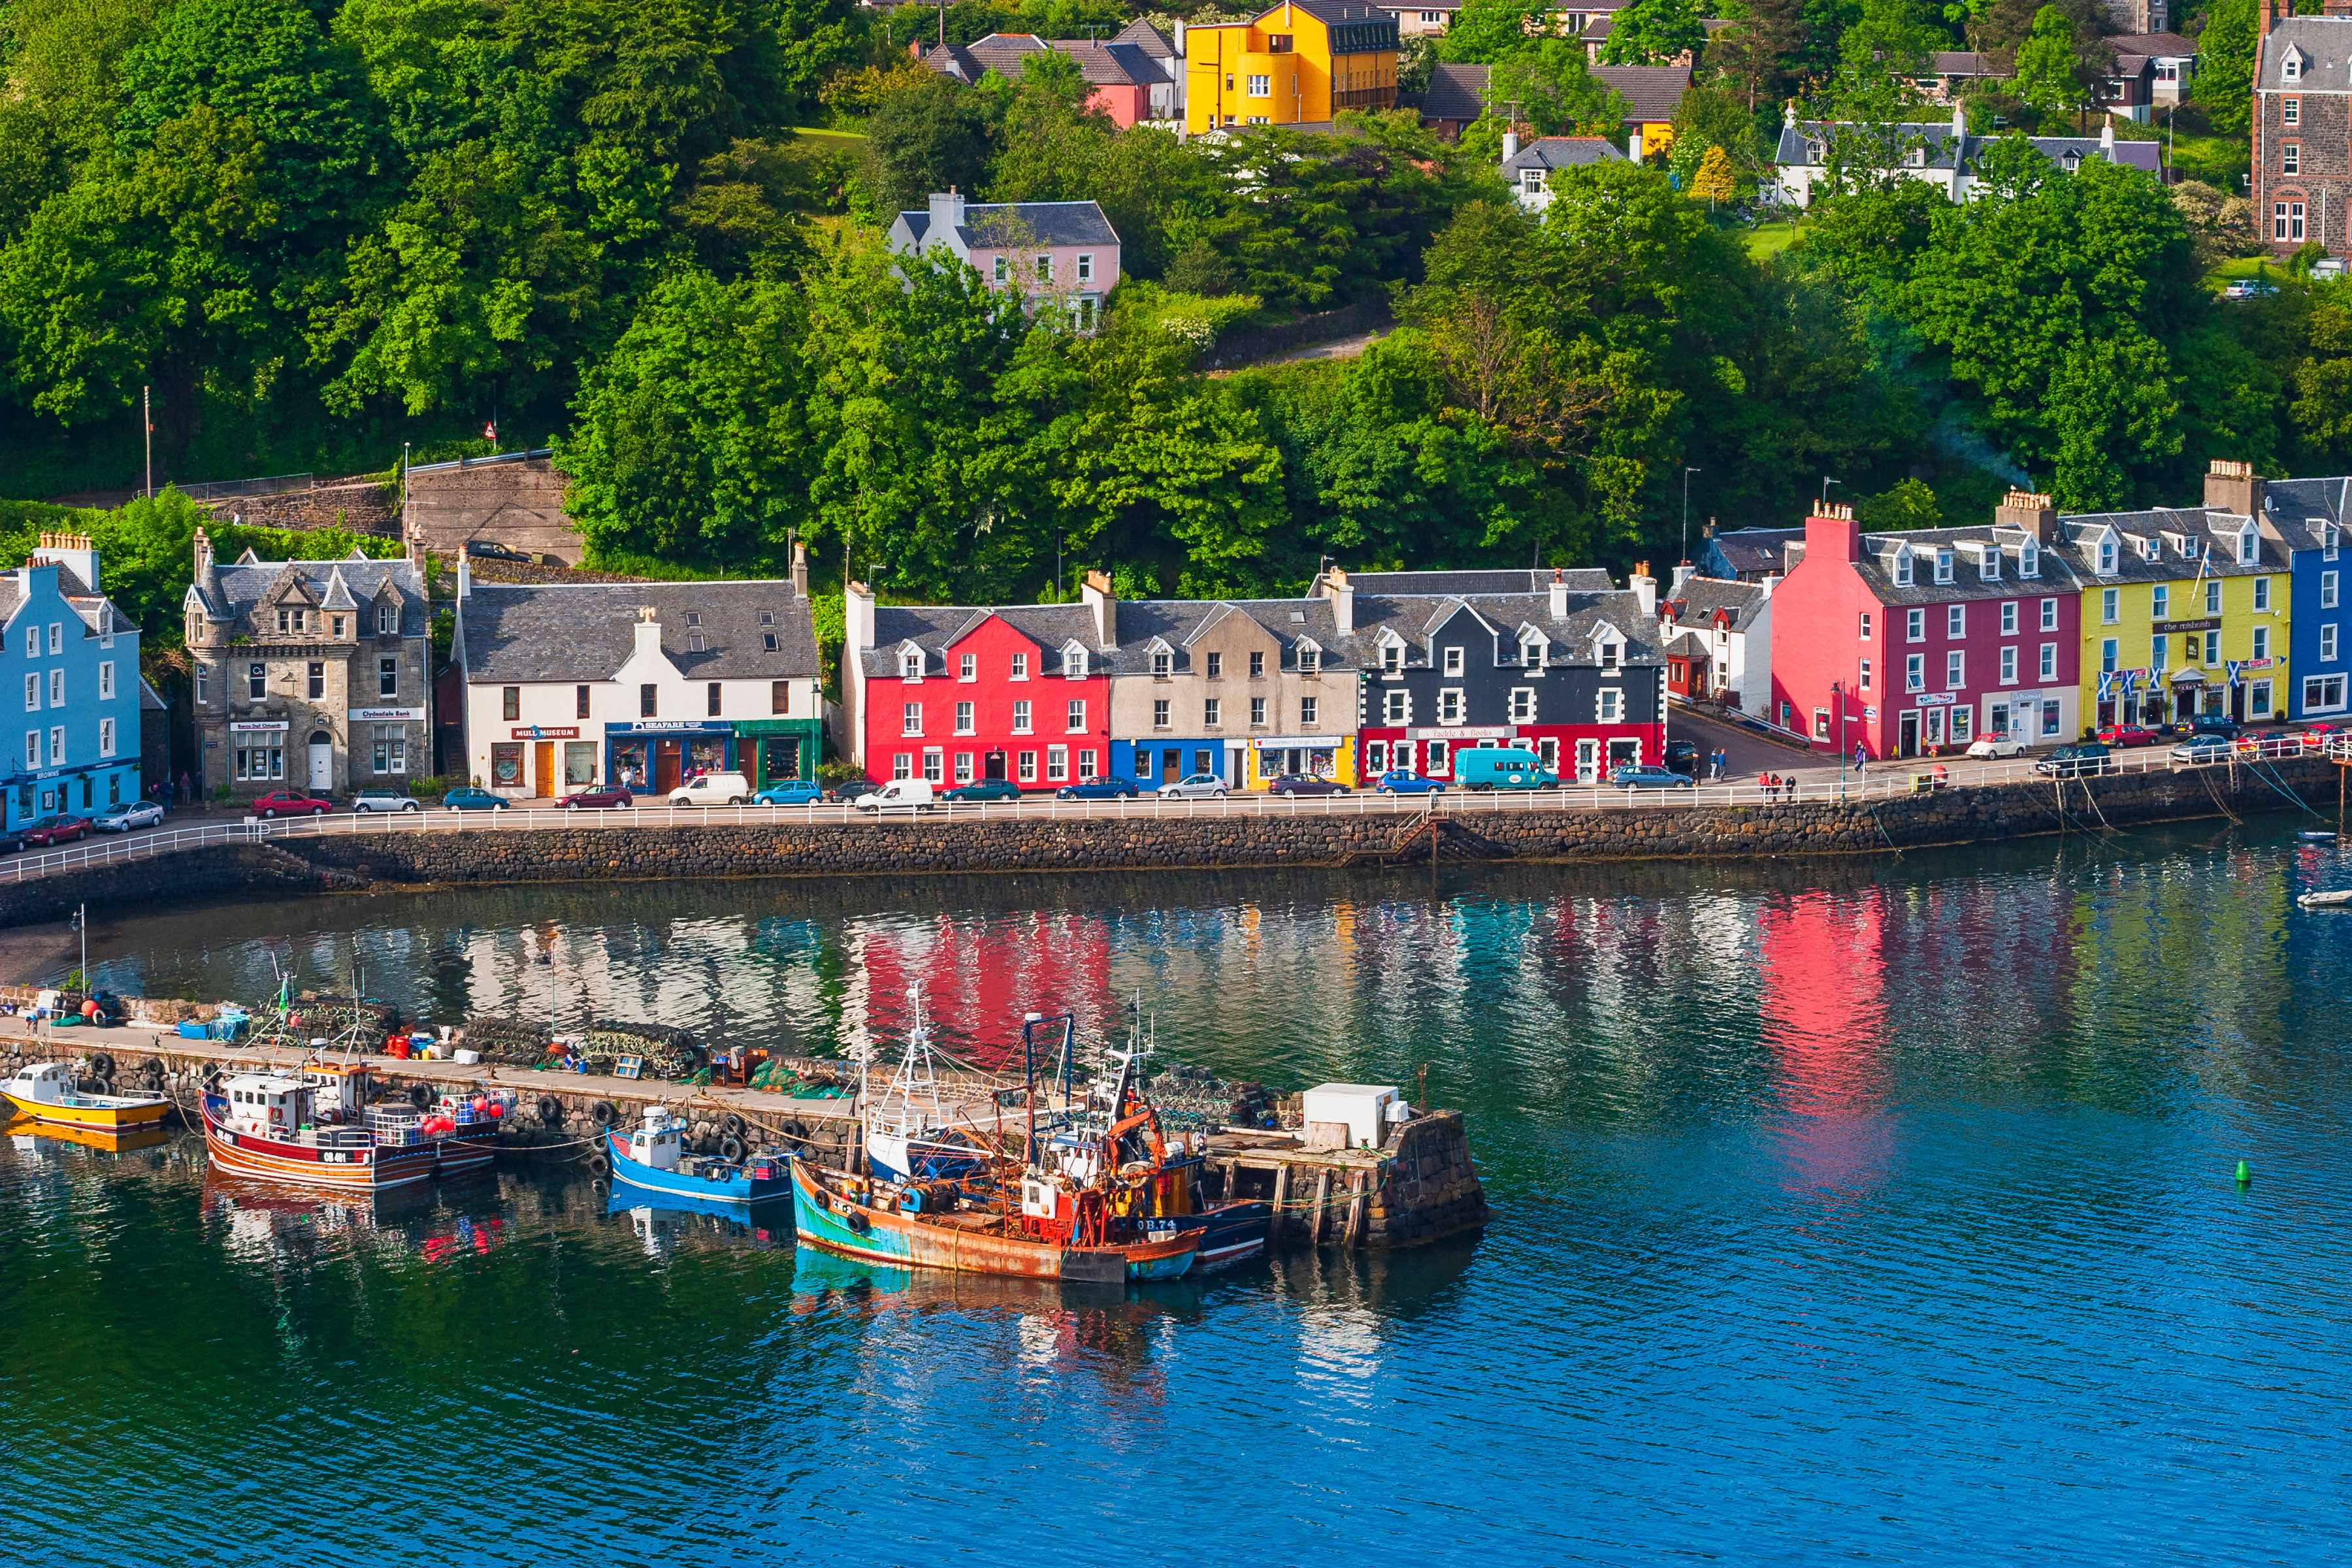 The colourful, charming harbour of Tobermory on the Isle of Mull, Scotland.